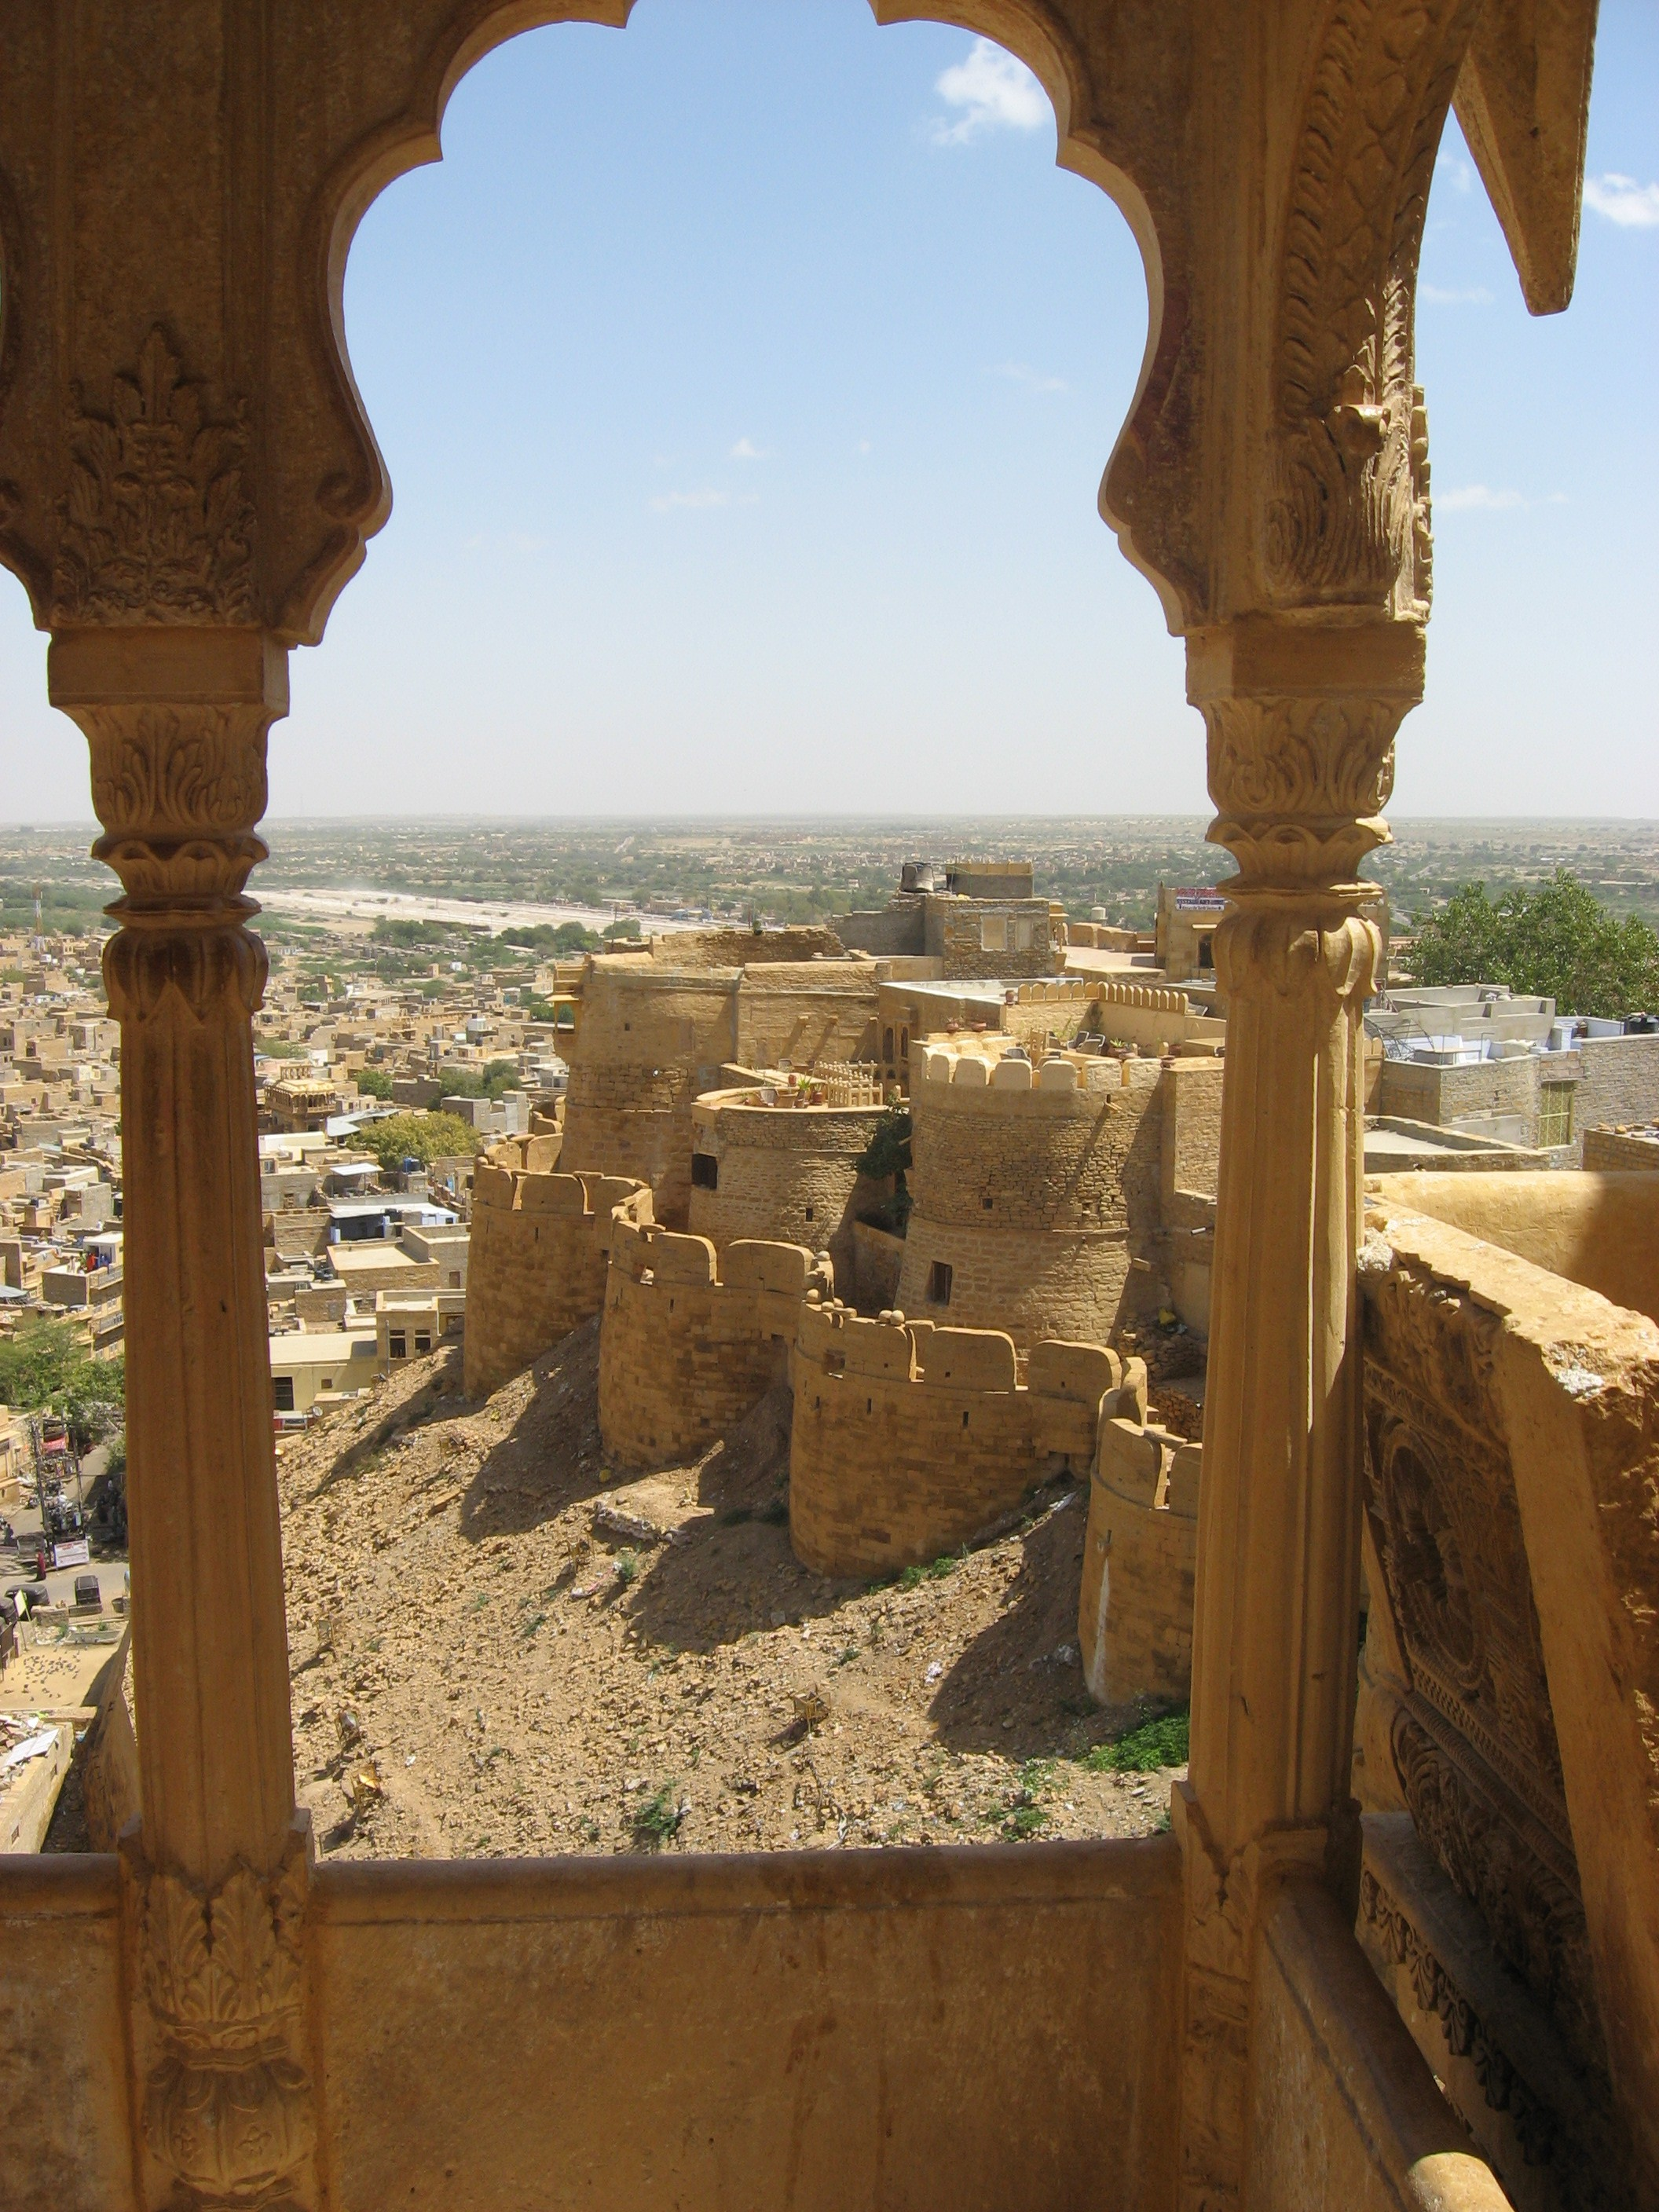 sand castle in Jaisalmer